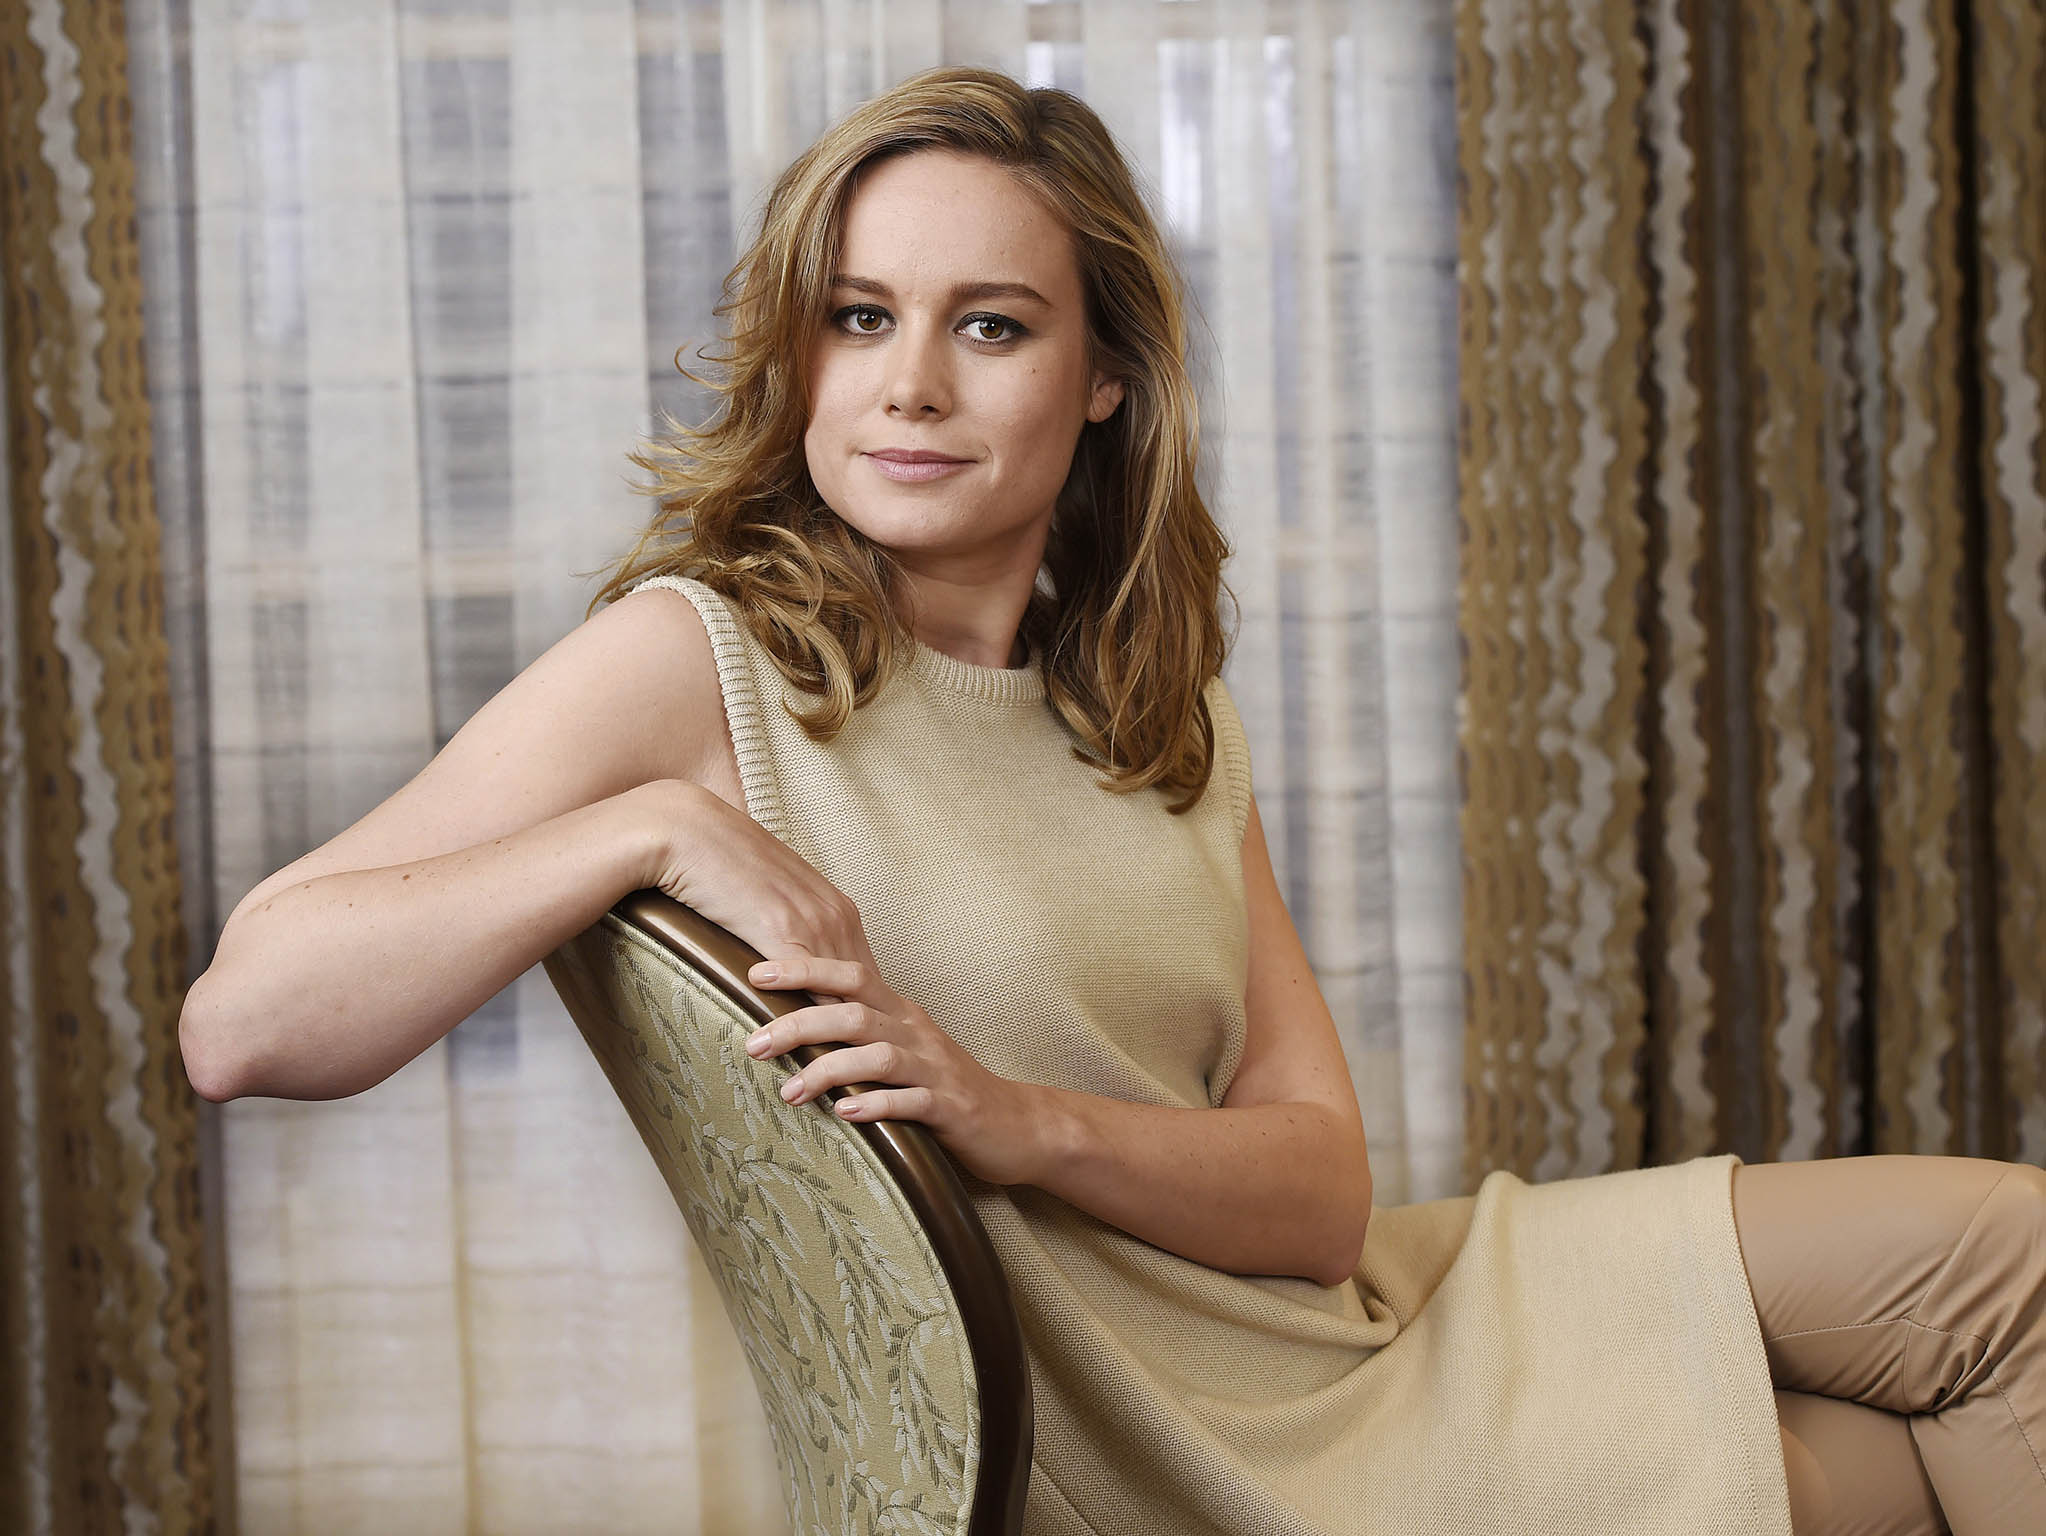 Fotos Brie Larson nudes (97 photo), Tits, Sideboobs, Boobs, swimsuit 2020